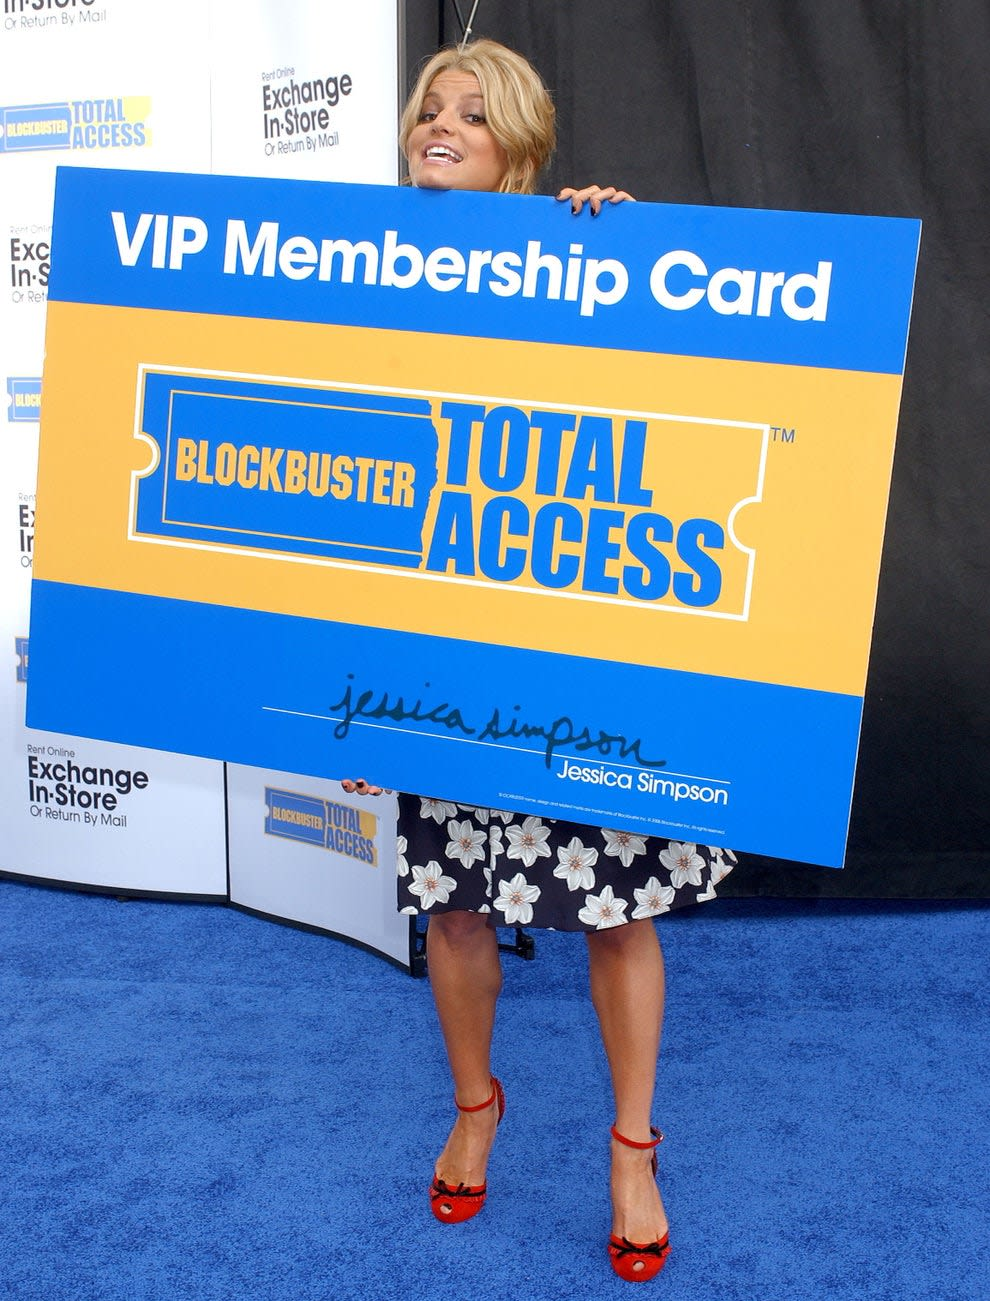 jess simpson with a giant blockbuster card